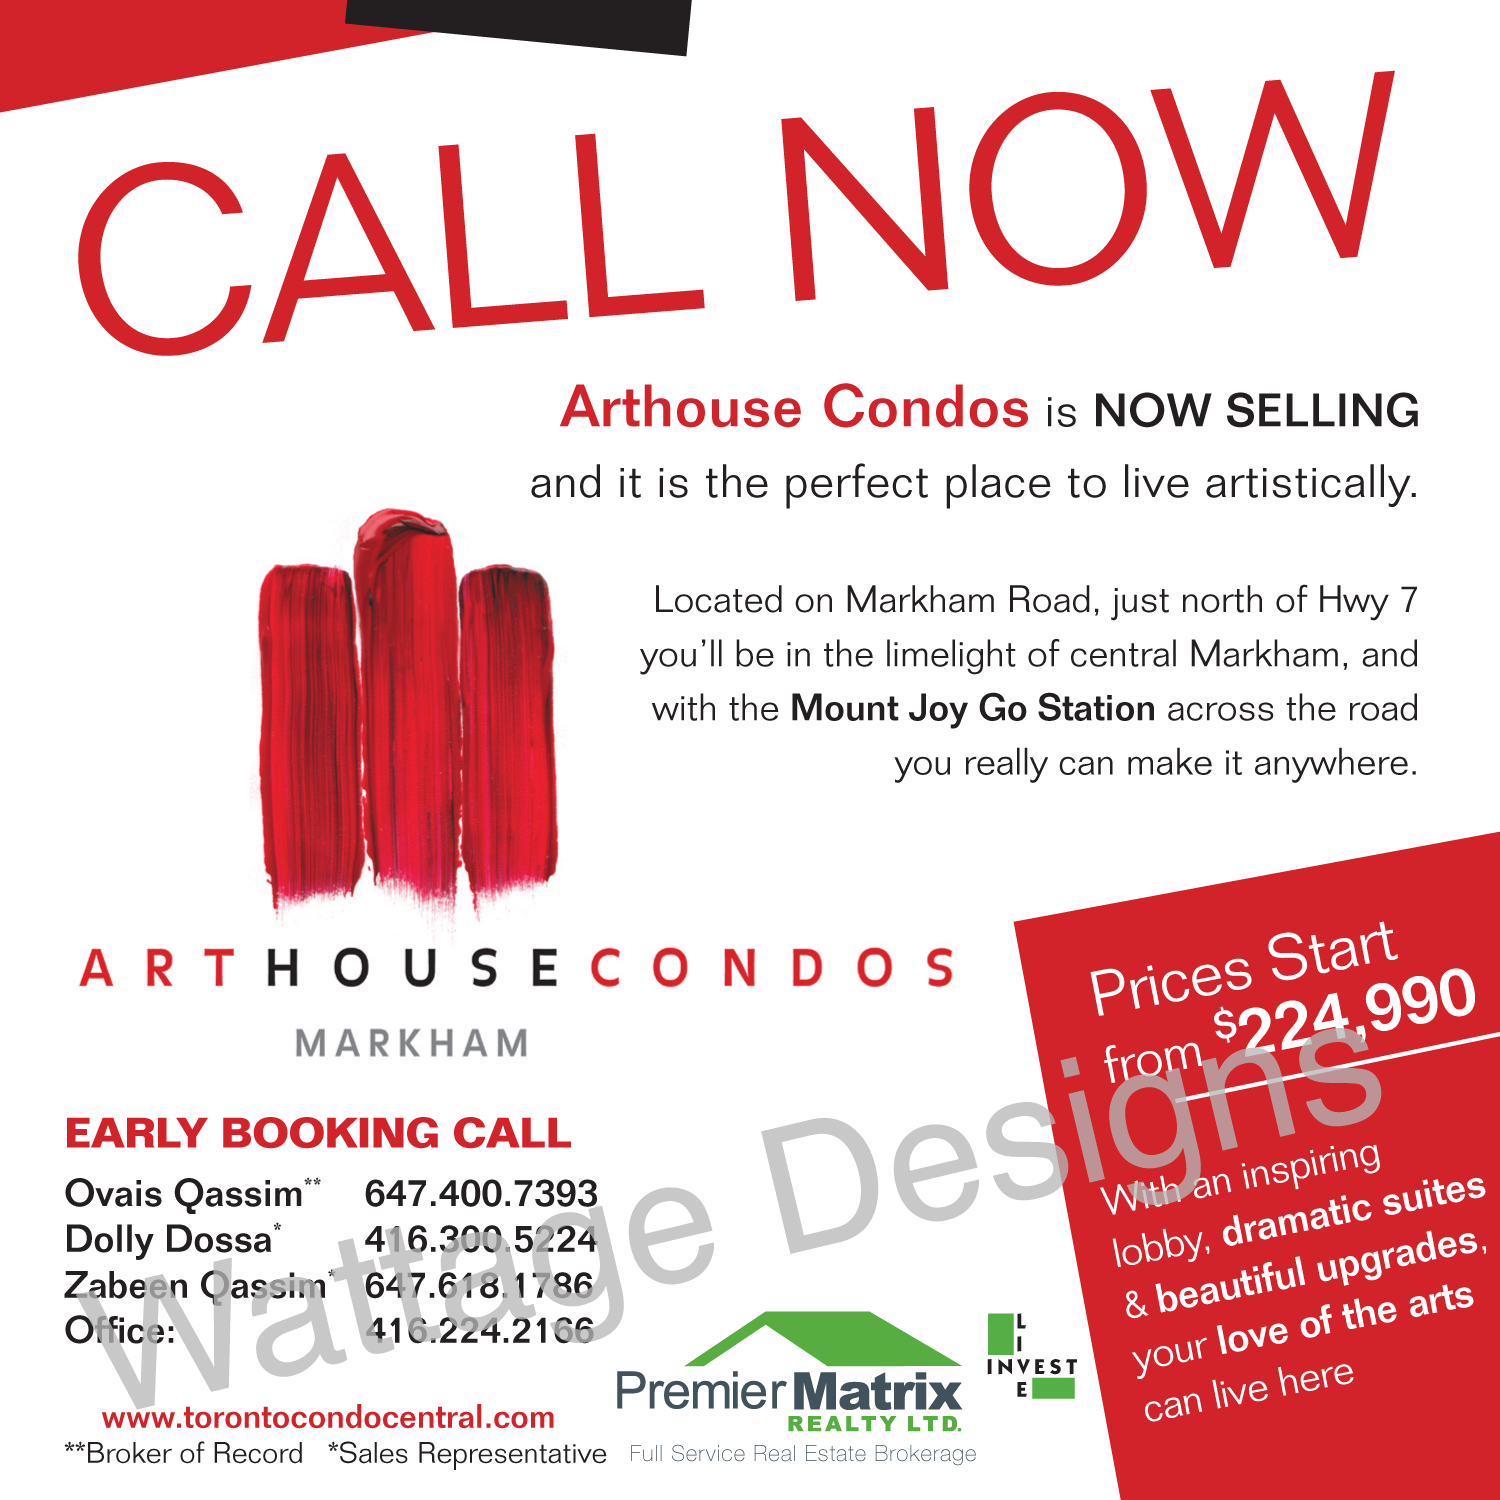 Arthouse Condos